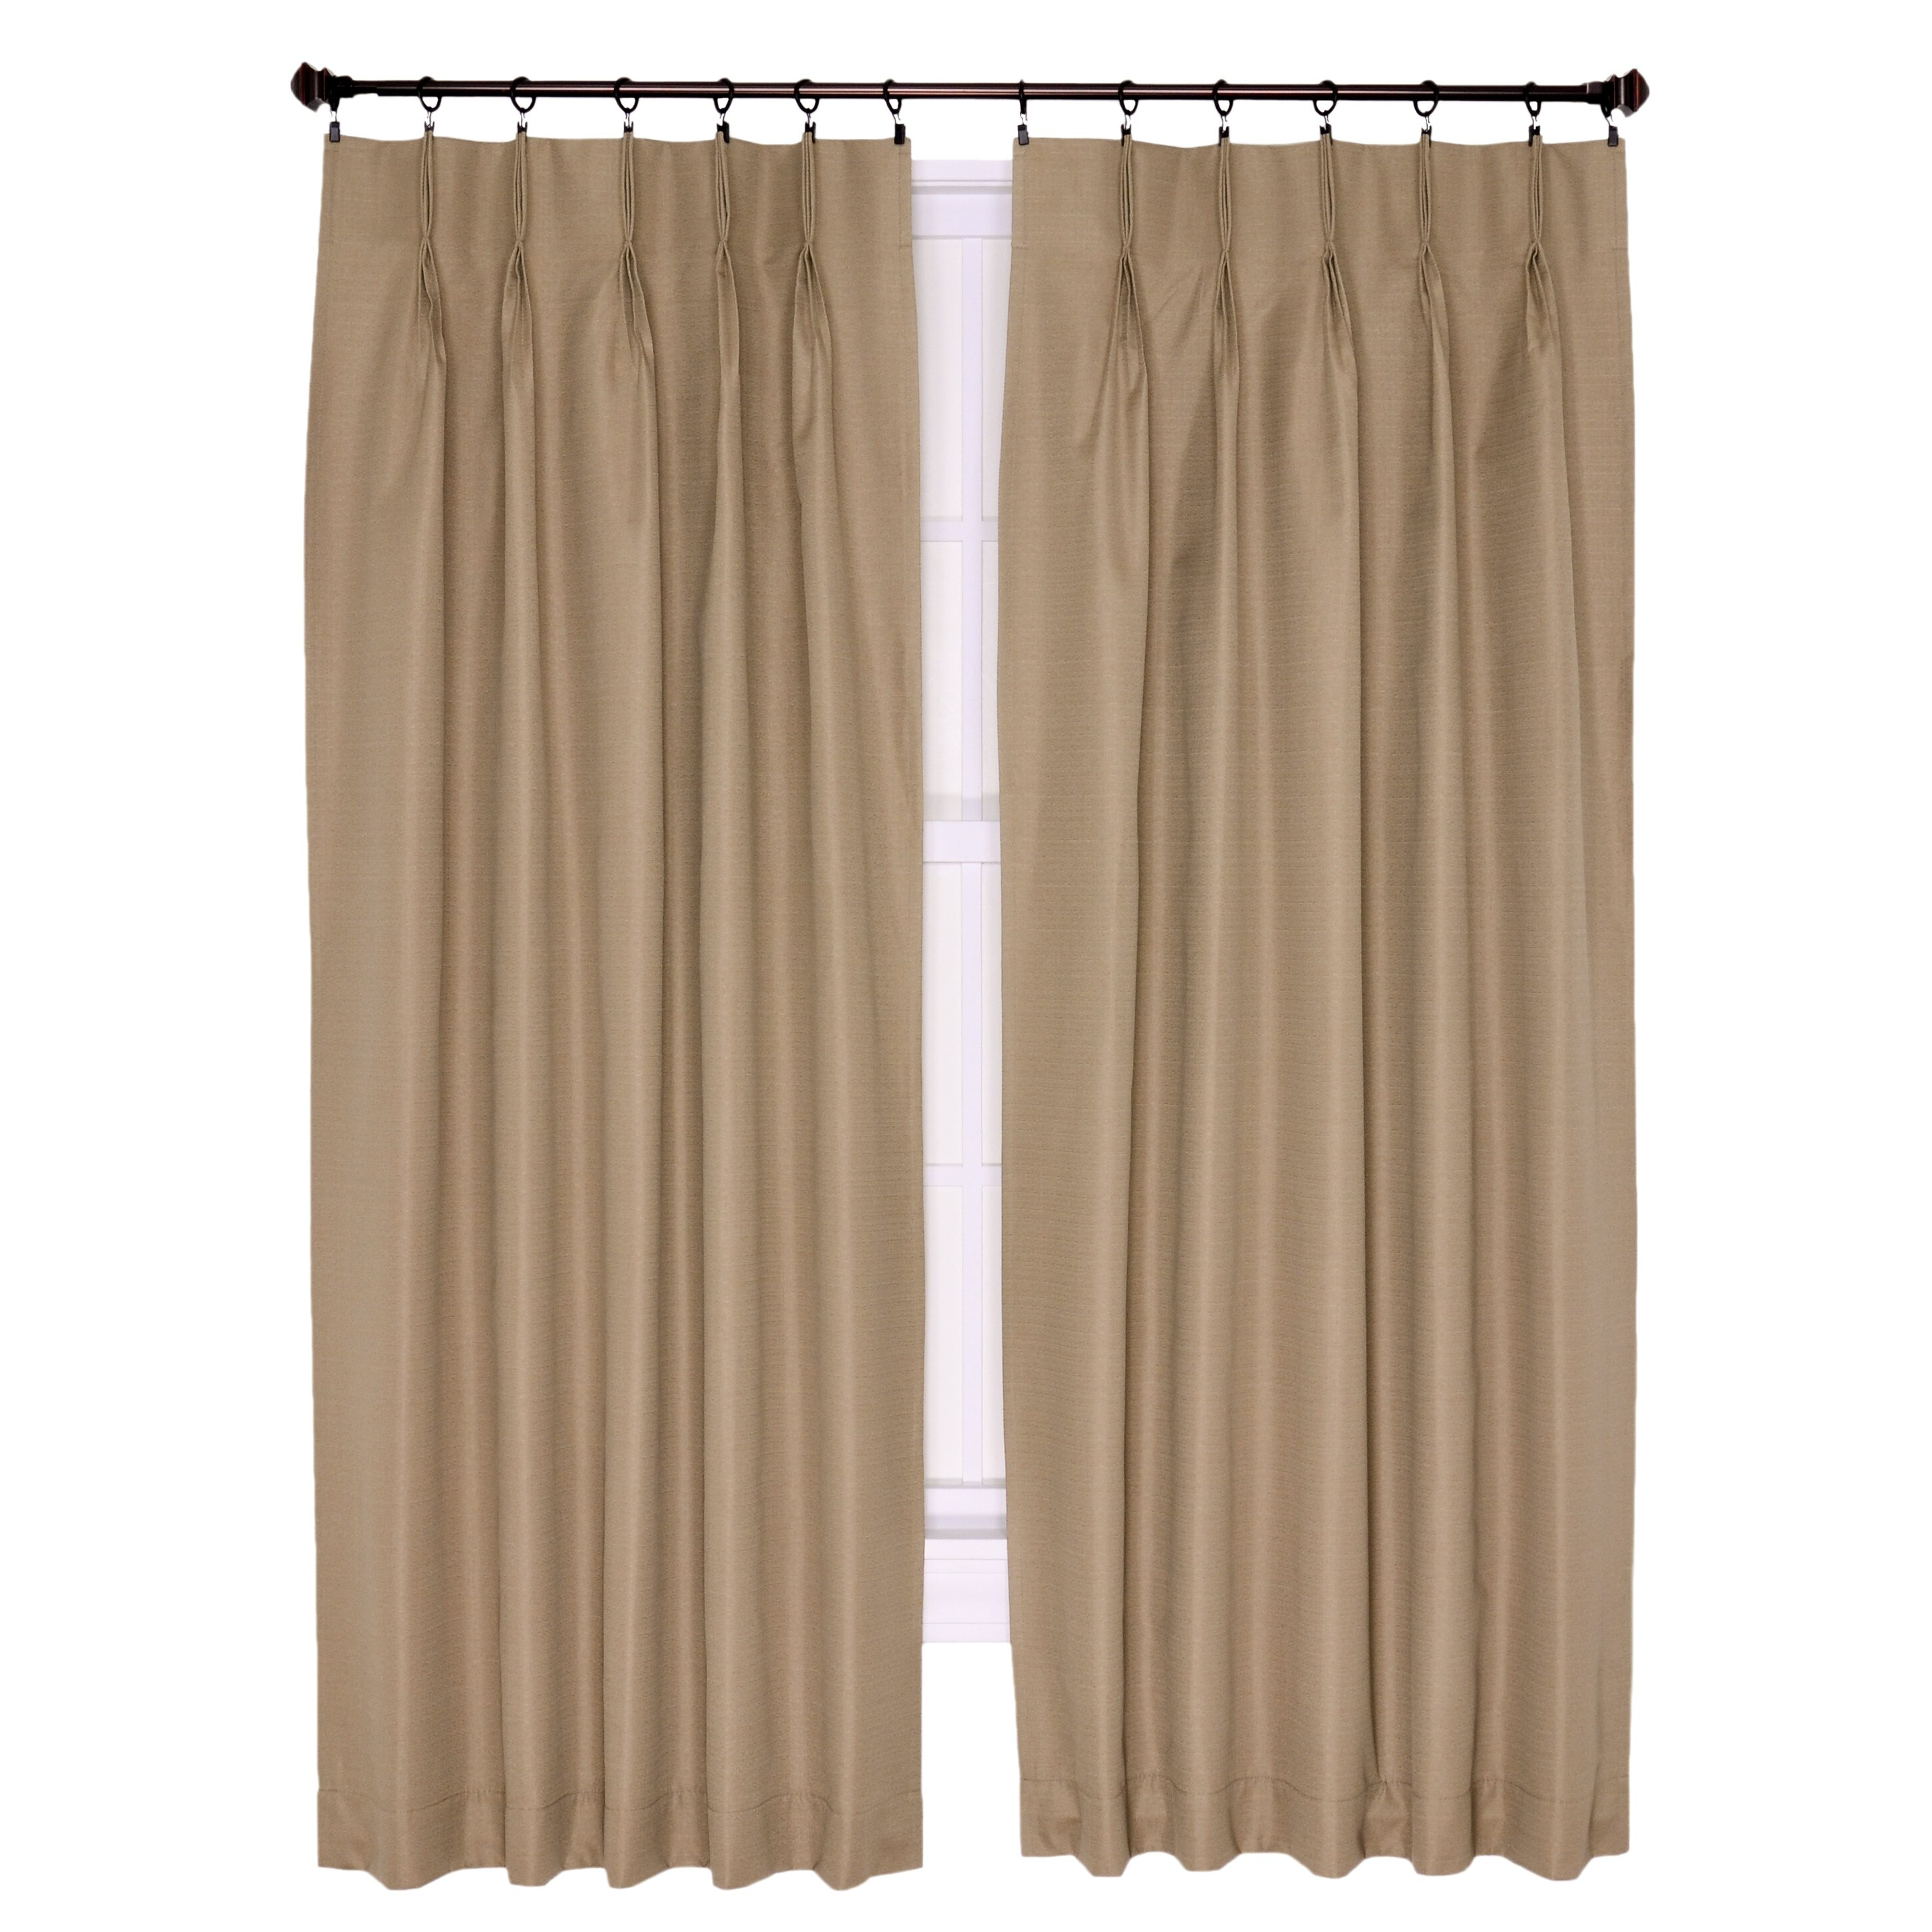 Pinch Pleated Thermal Insulated Drapes: Ellis Curtain Crosby Insulated Pinch Pleated Foamback